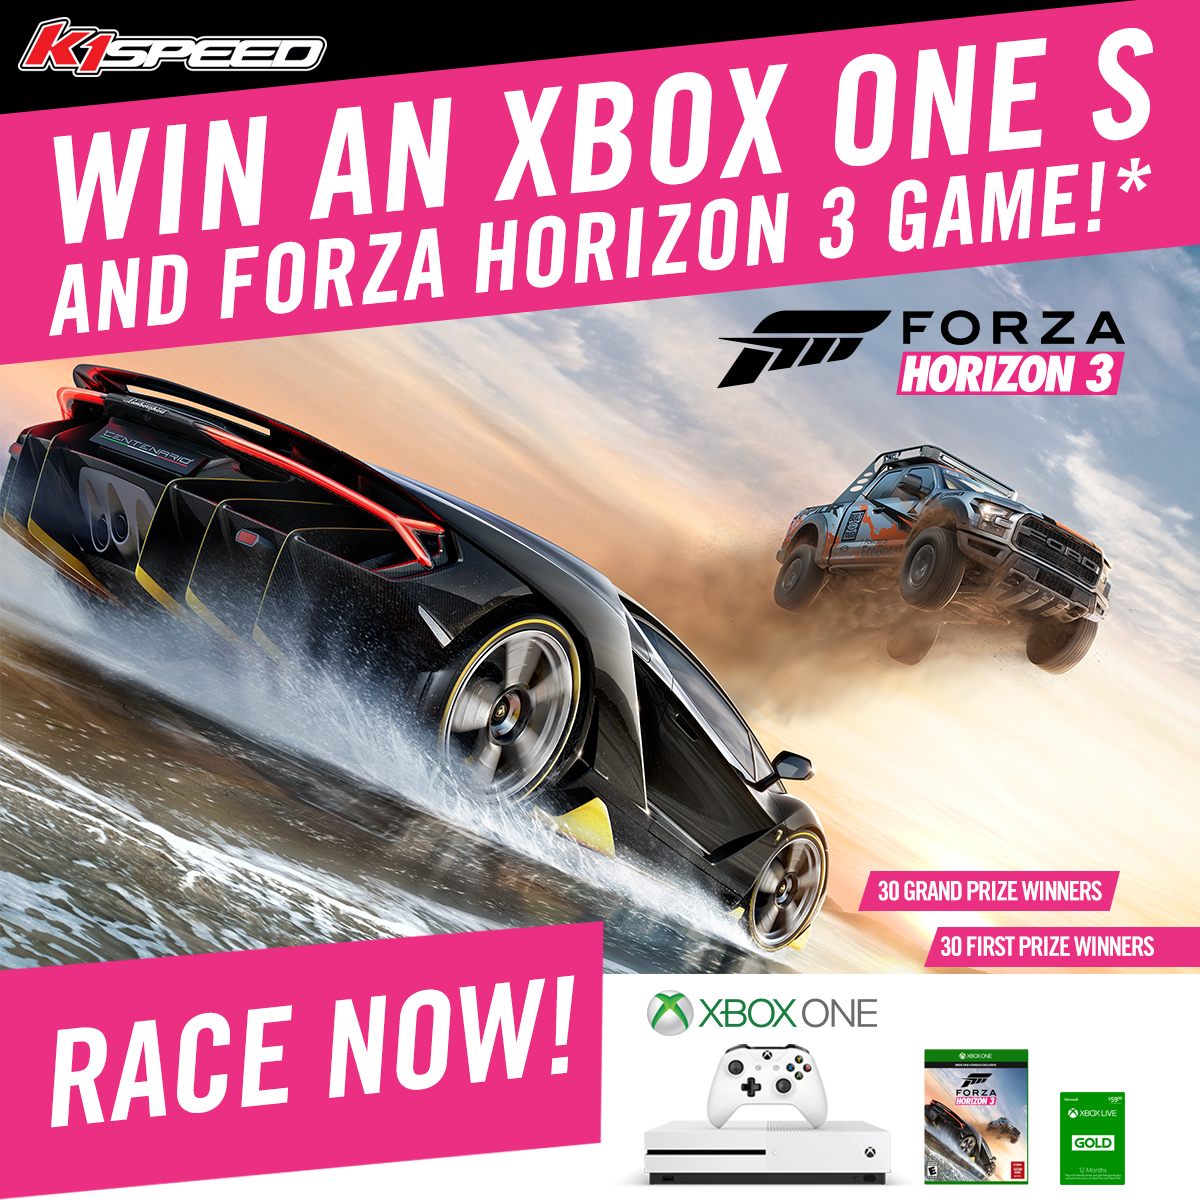 Calling all gamers and race fans test your skills on our tracks nationwide for a chance to win an xbox forza horizon 3 launch giveaway